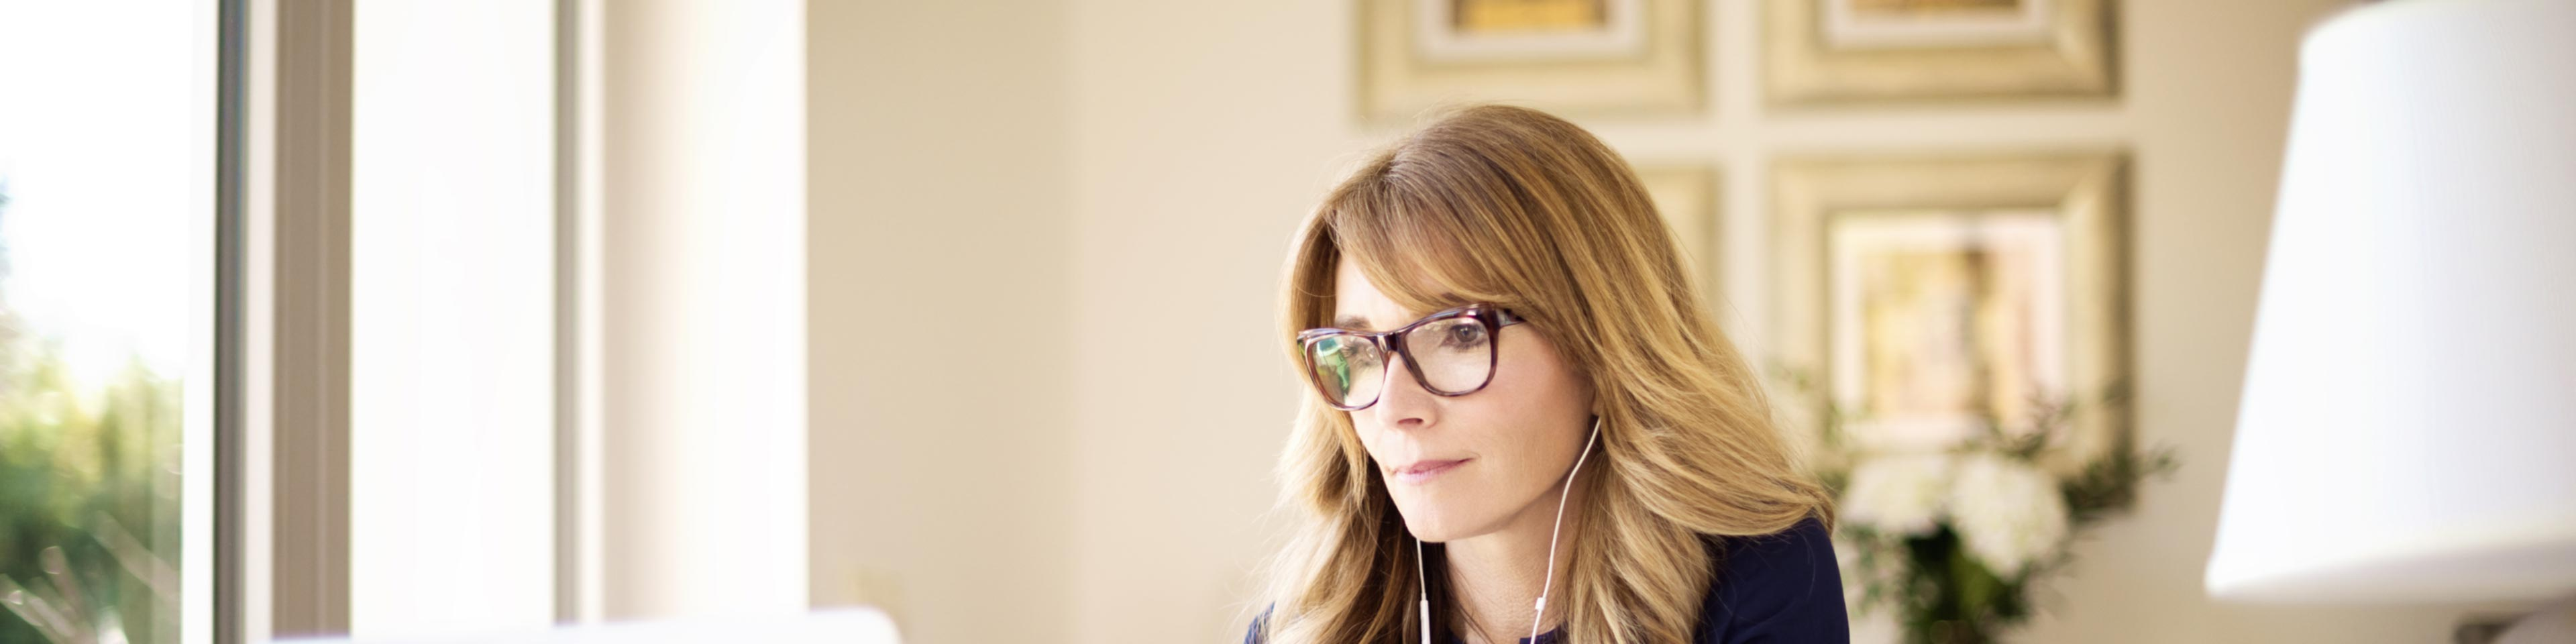 woman at laptop with glasses